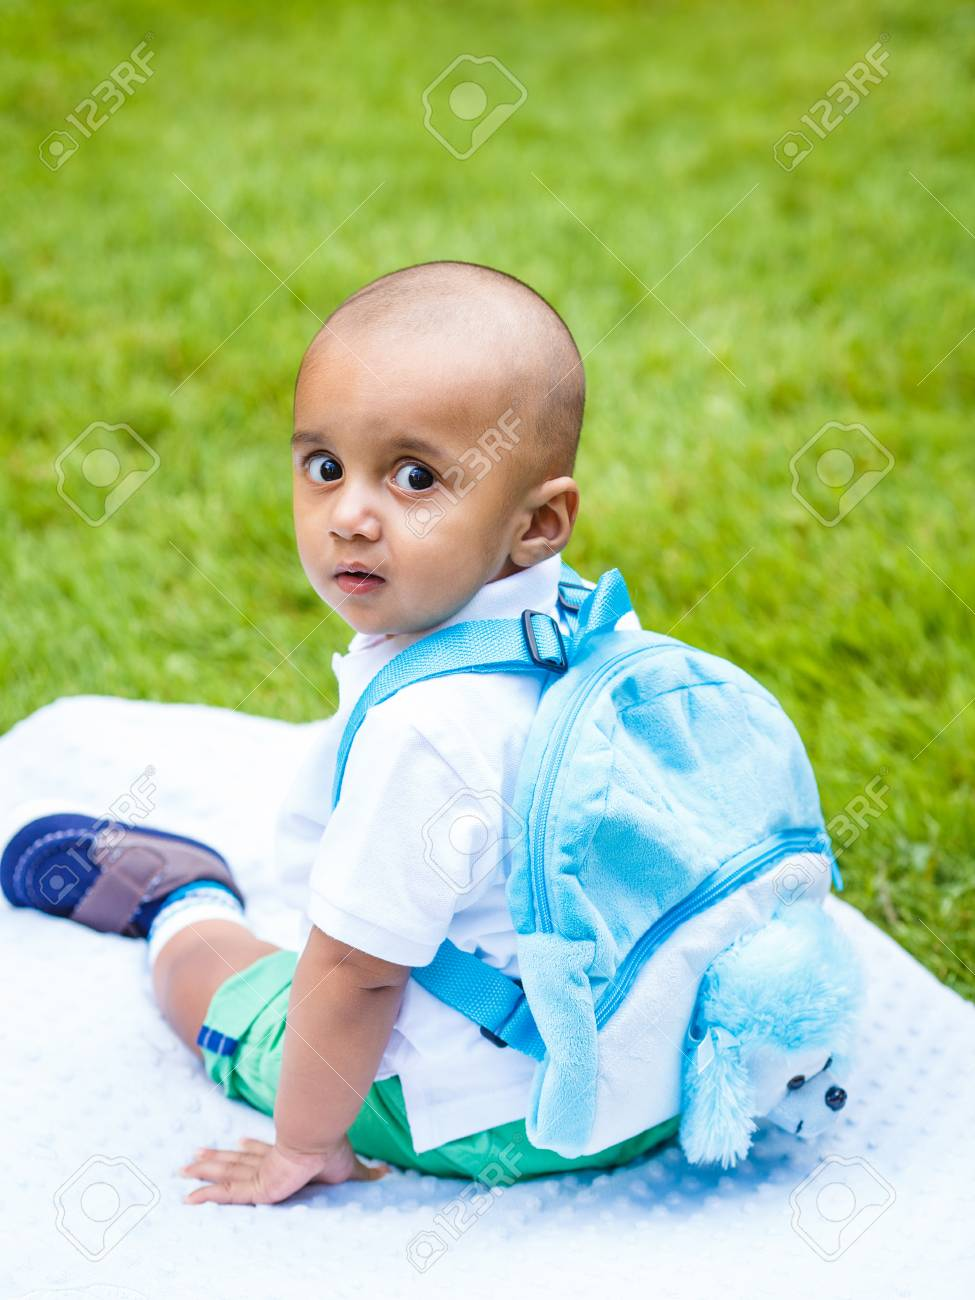 20e81f2756c Portrait of cute adorable little indian mixed race infant boy in white  shirt sitting on ground